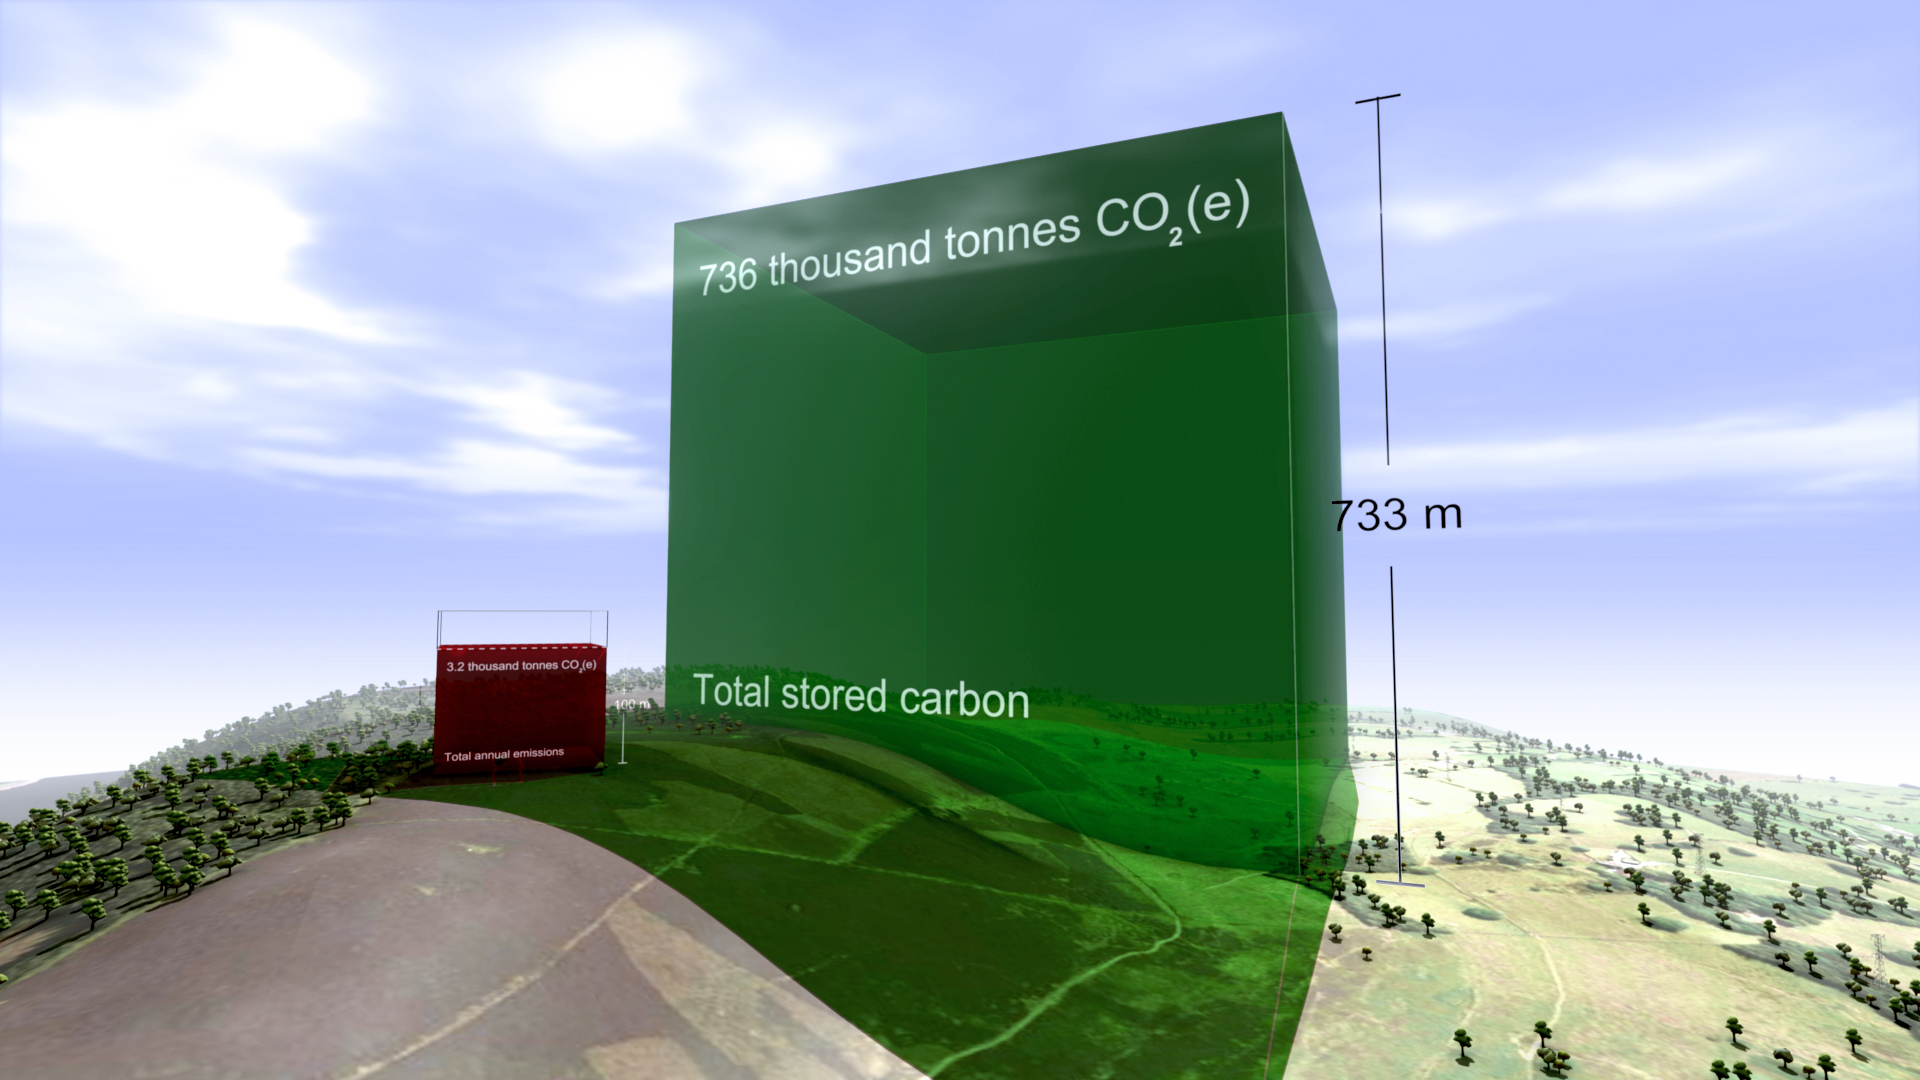 Adas have estimated that 736 thousand tonnes of carbon dioxide equivalent are stored in the soils and vegetation just for the ten farms in the study.